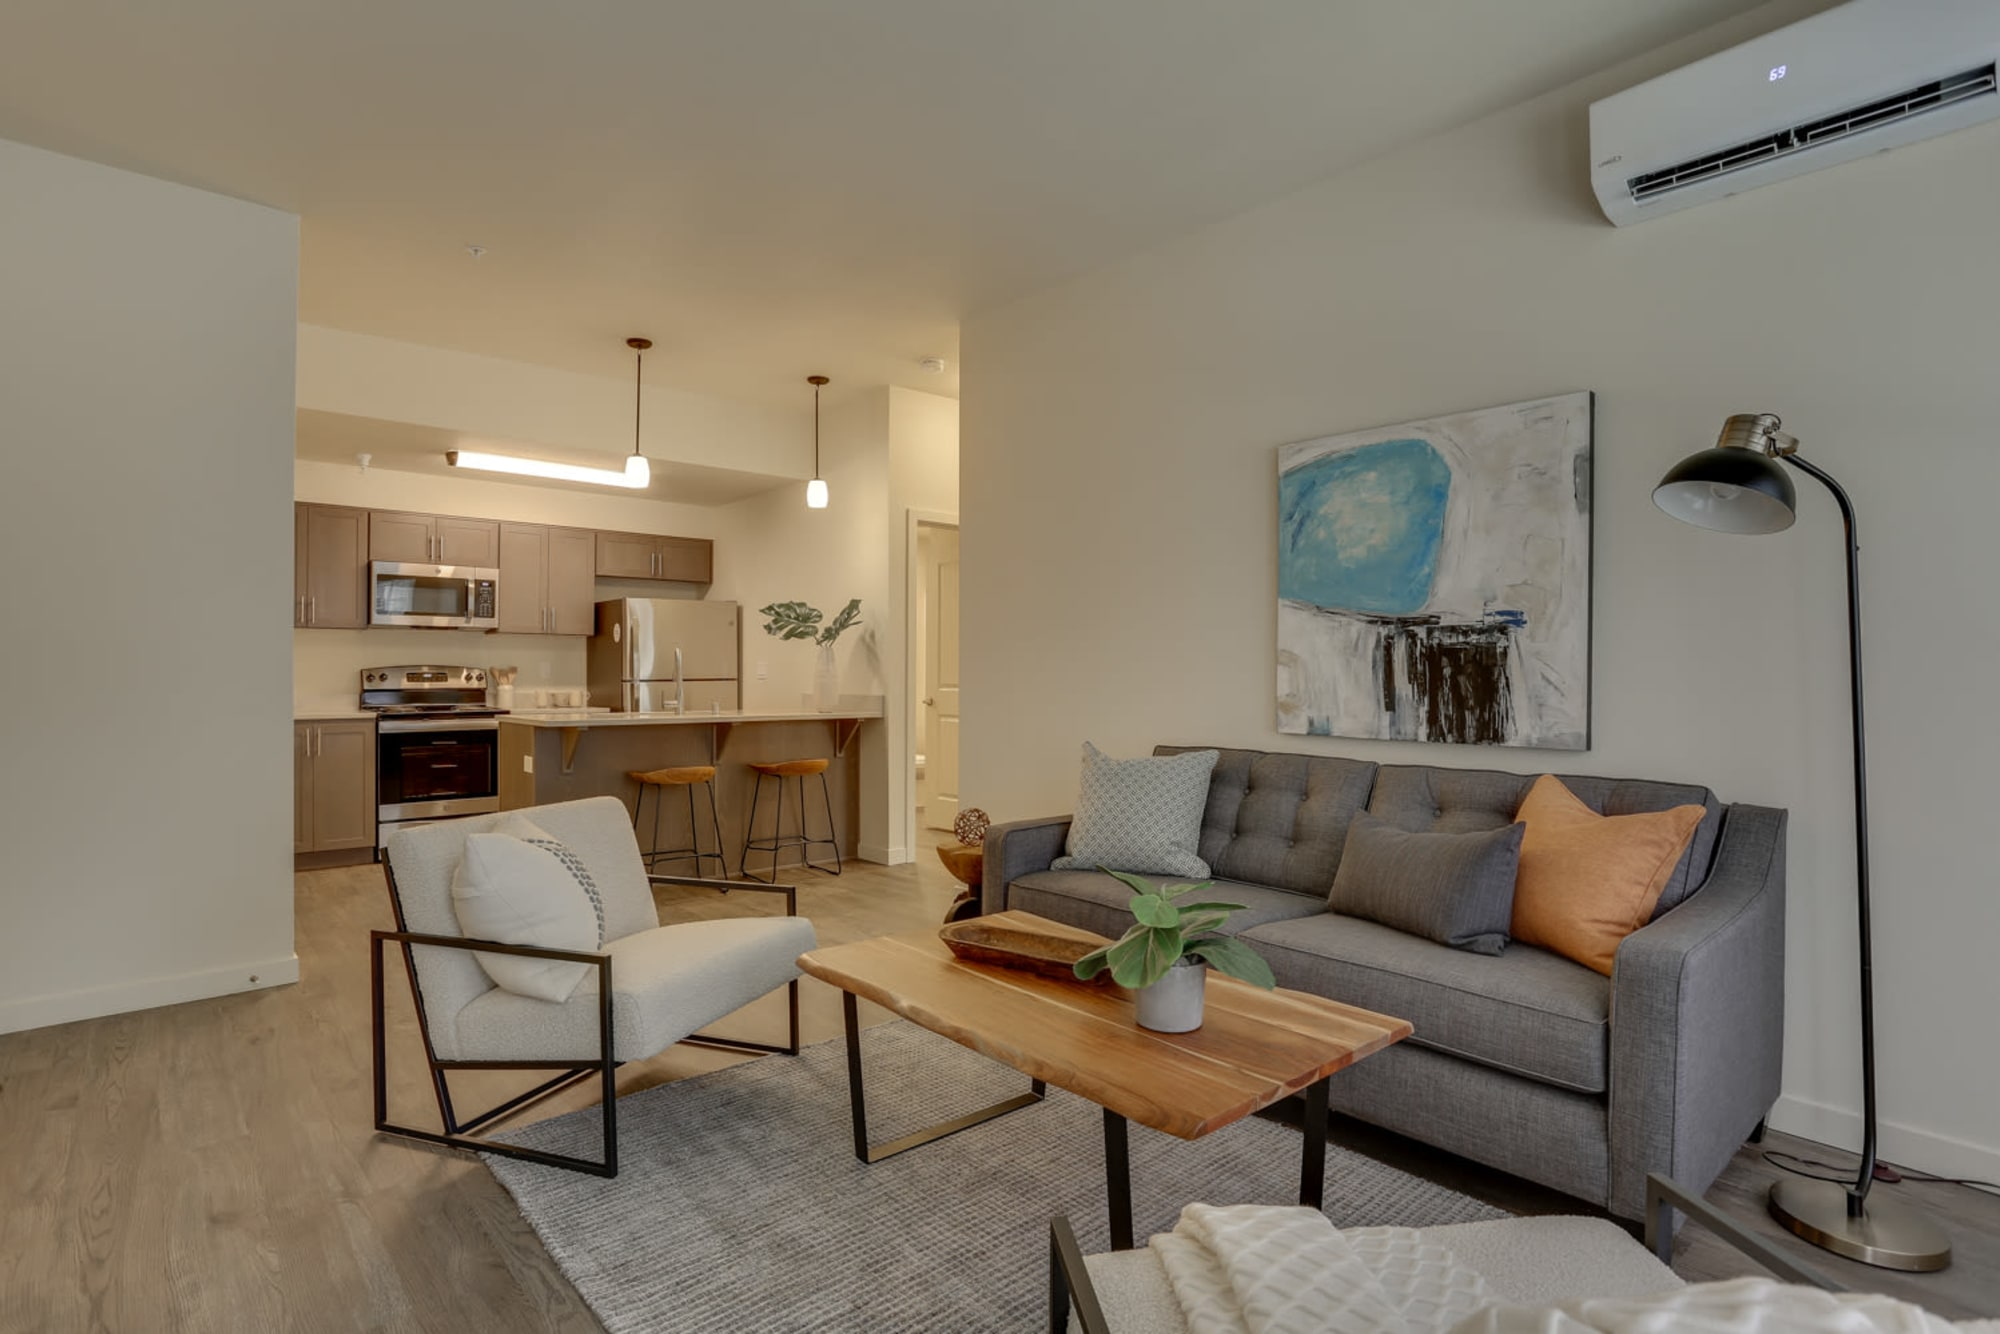 Modern living room furnishings at Haven Hills in Vancouver, Washington